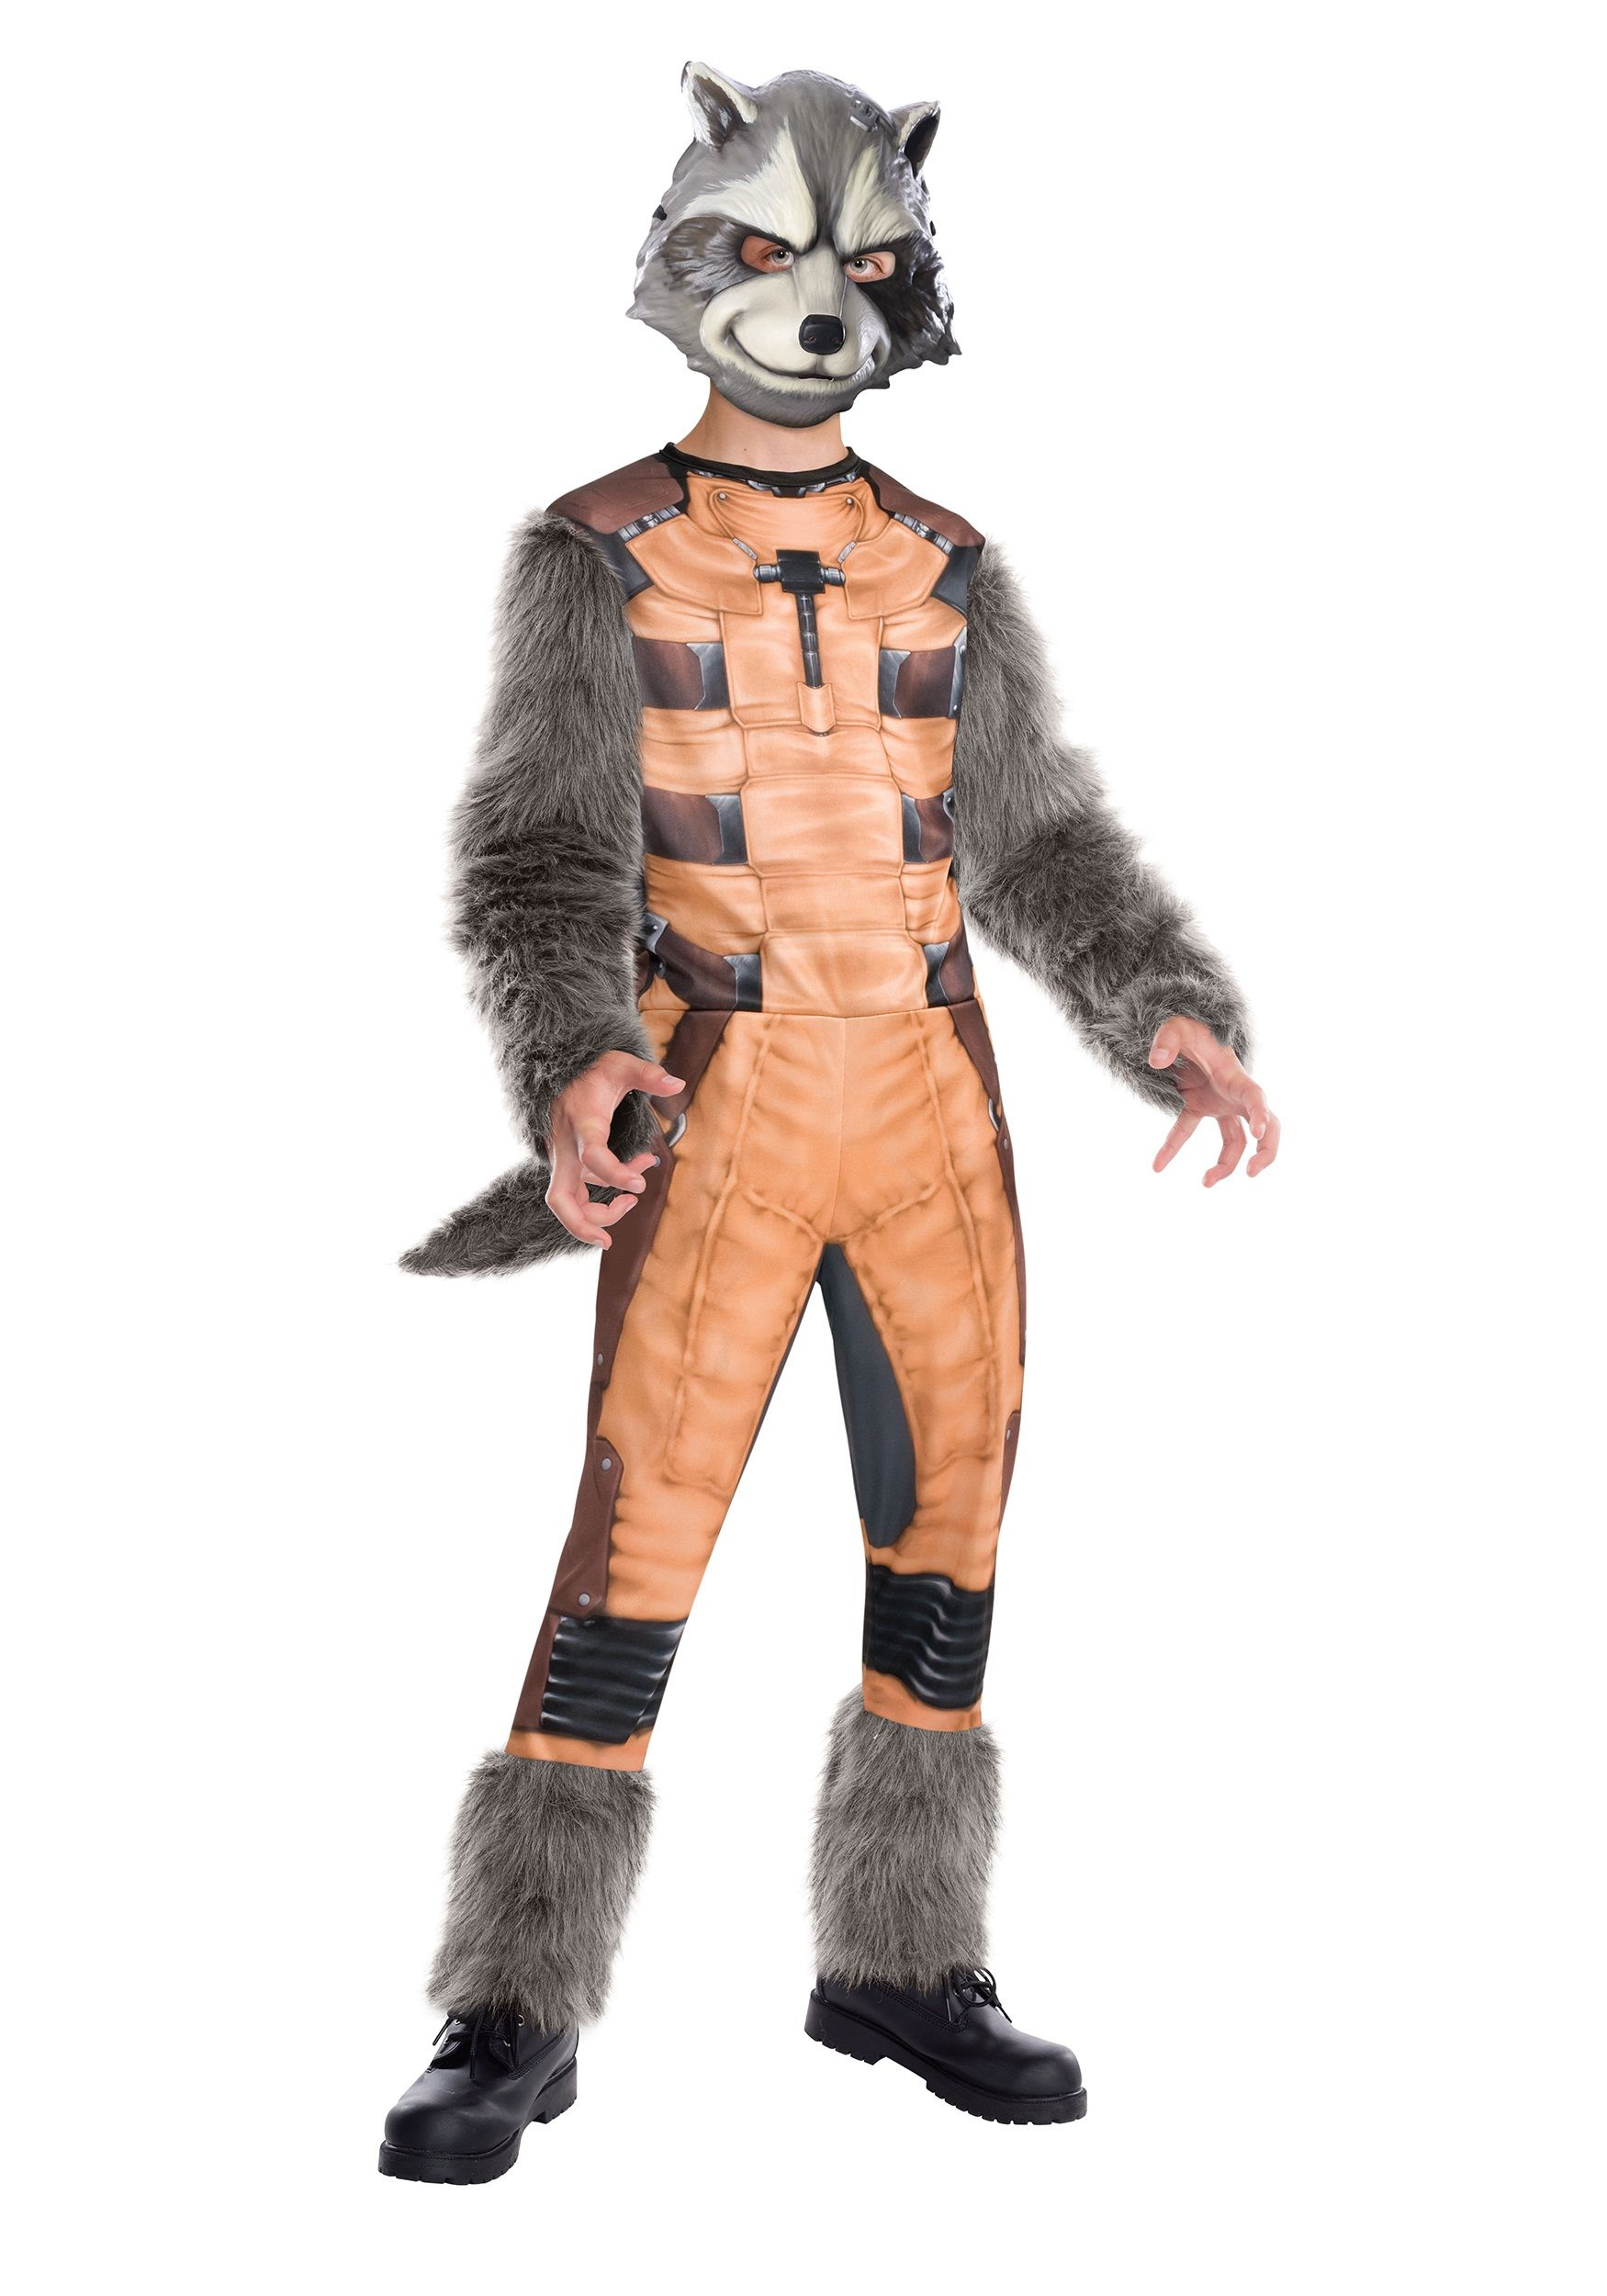 Deluxe Kids Rocket Raccoon Costume | Rocket costume, Rocket ...